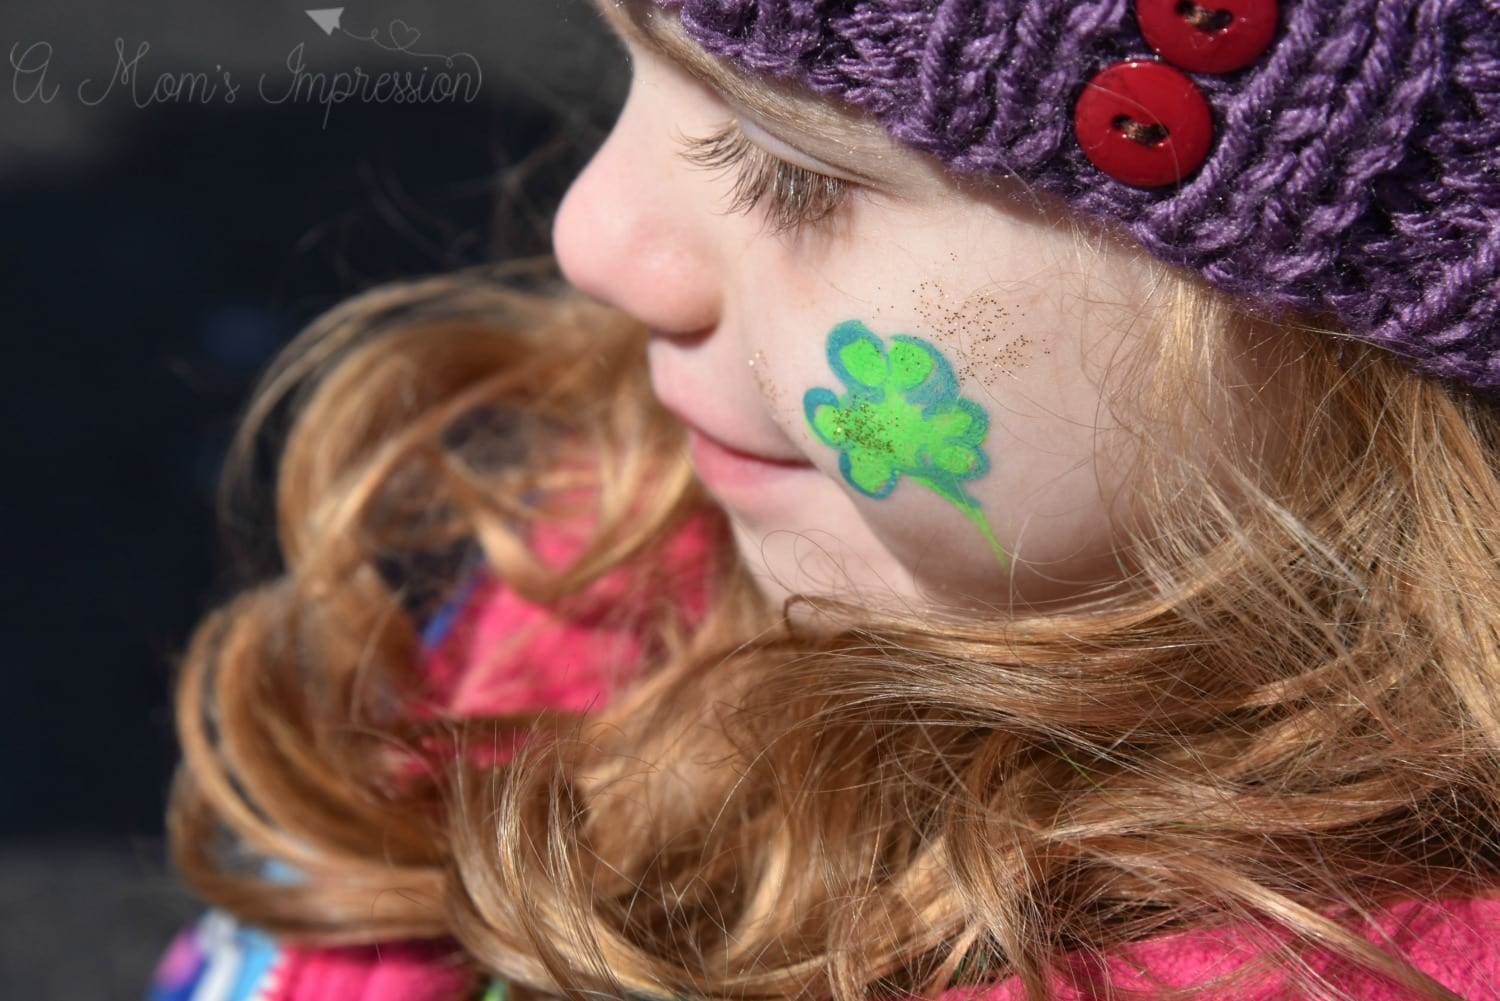 shamrock face paint